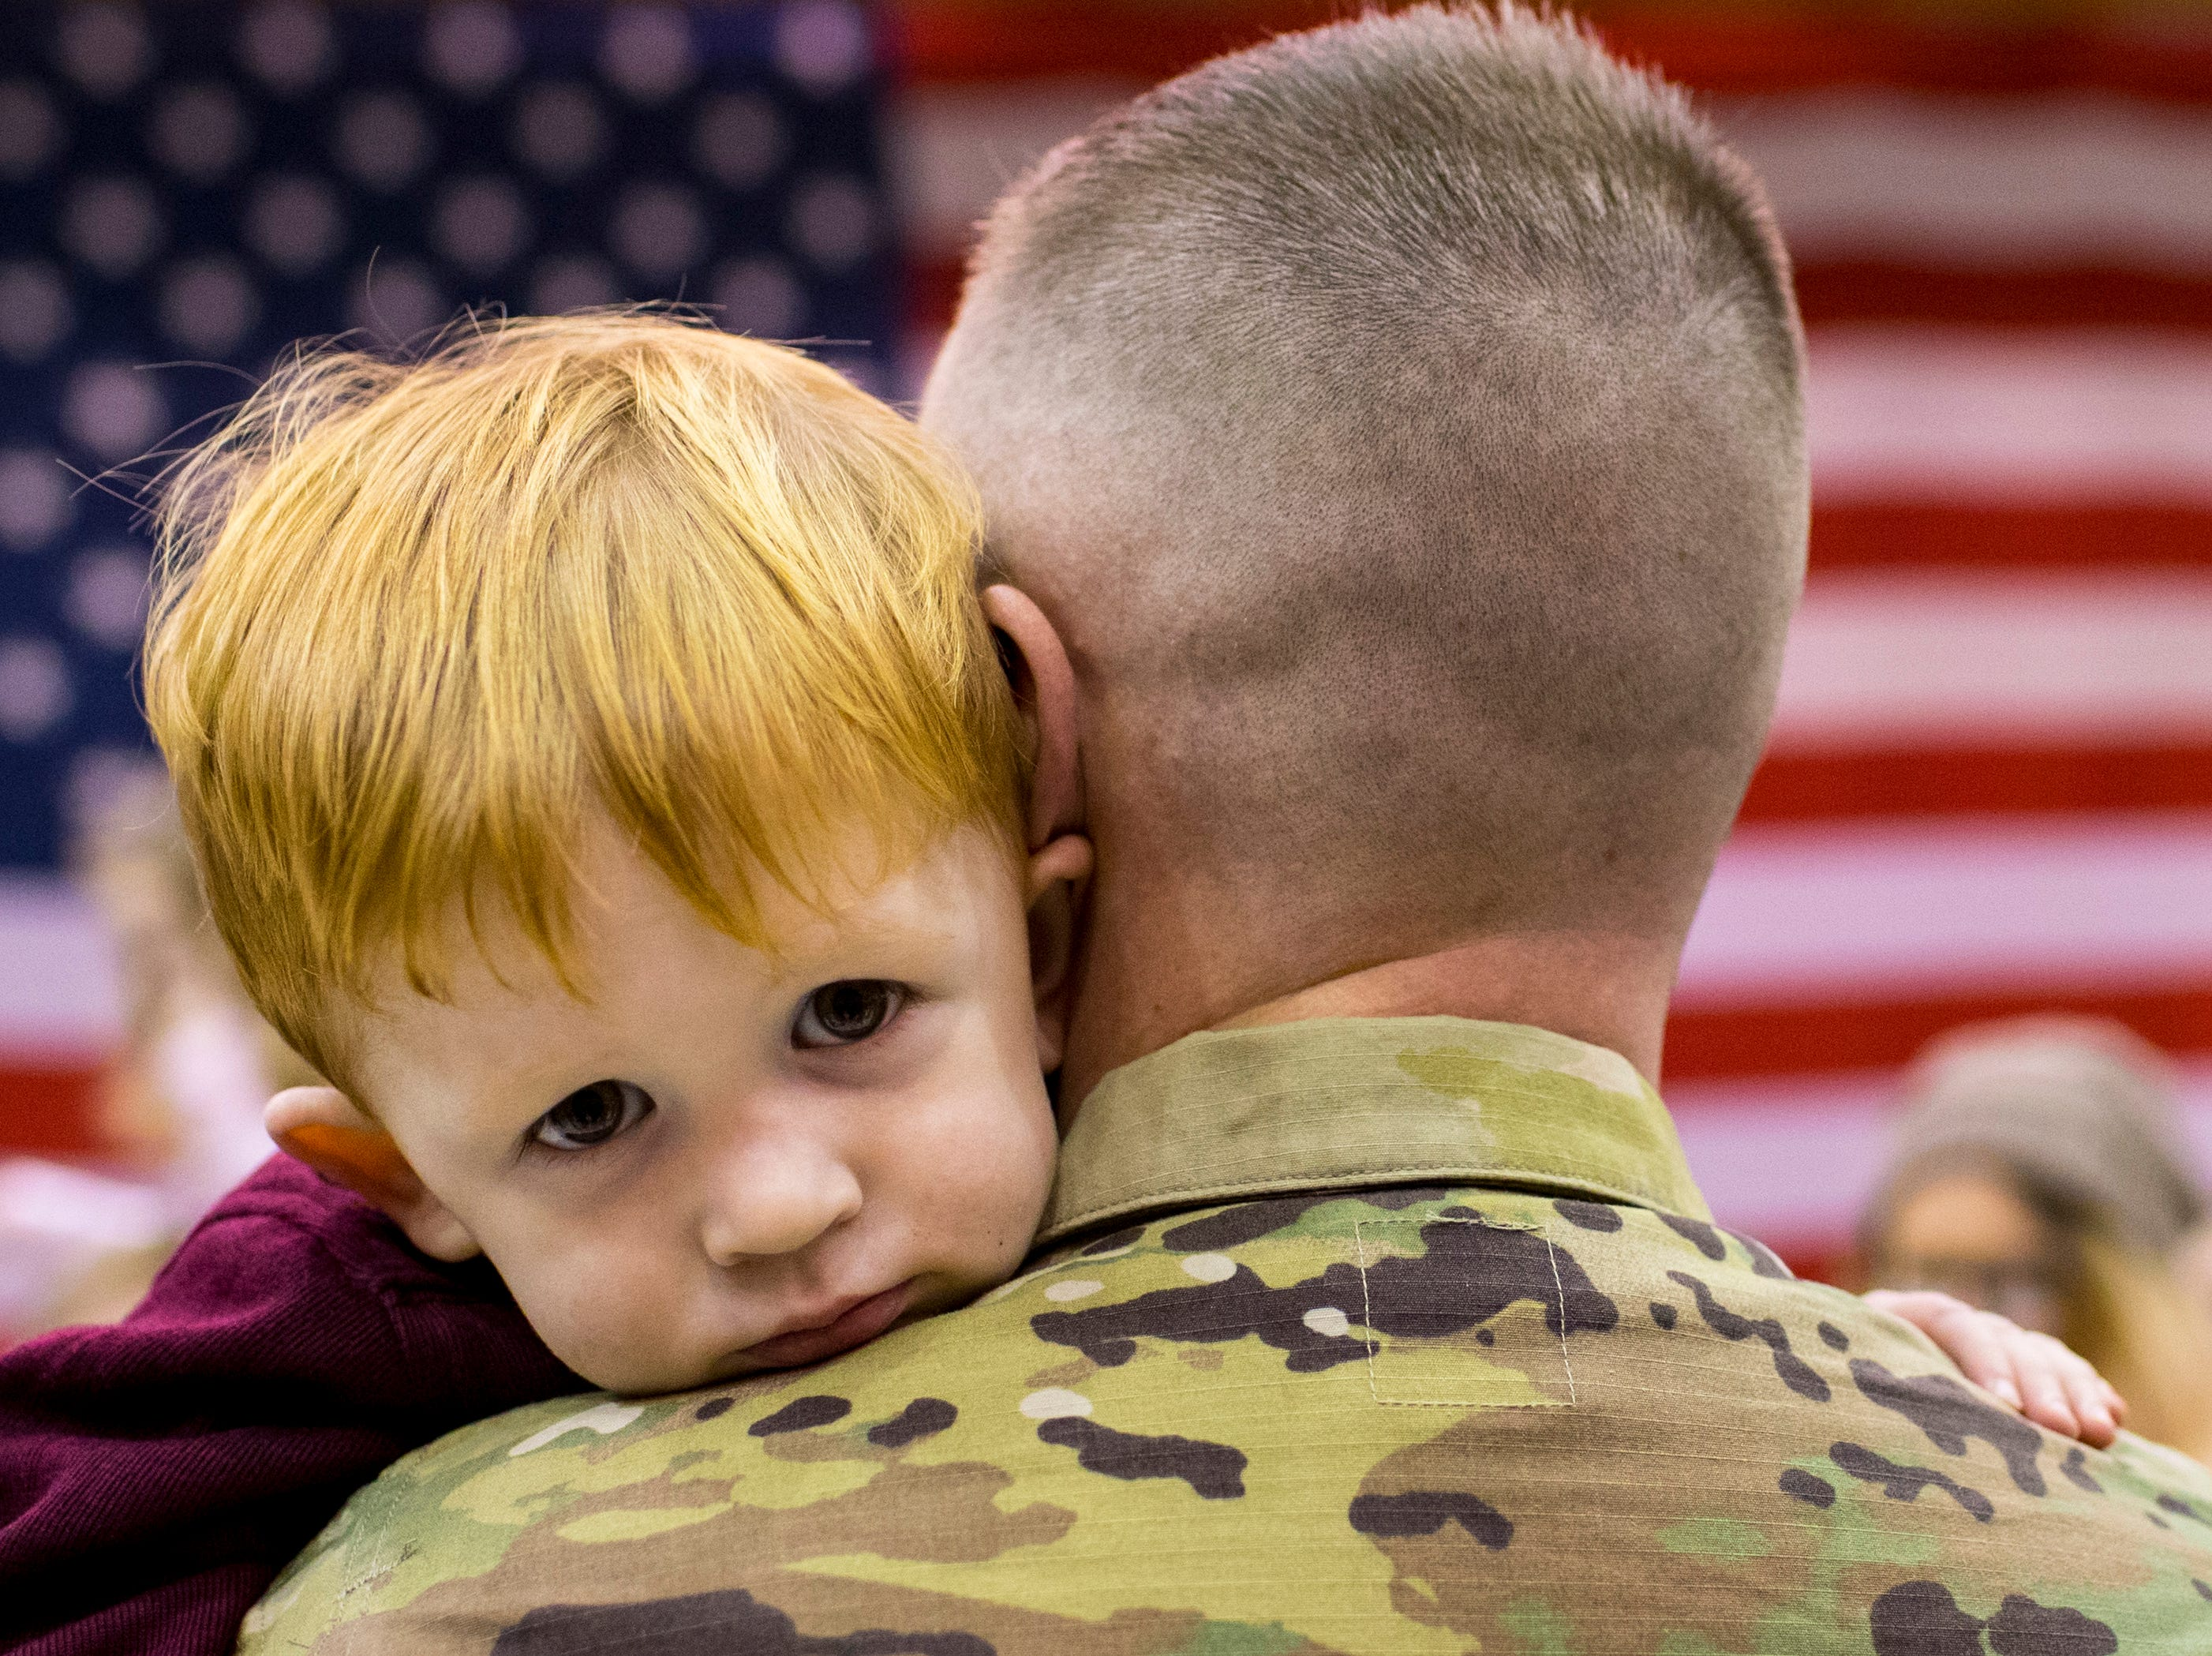 Capt. Ryan Smith holds Wyatt Smith, 2, during the welcome home ceremony for the 2nd Battalion, 44th Air Defense Artillery Regiment and 101st Airborne Division at Fort Campbell in the early hours of Monday, Nov. 19, 2018. The soldiers were returning from a 9-month deployment in Afghanistan.